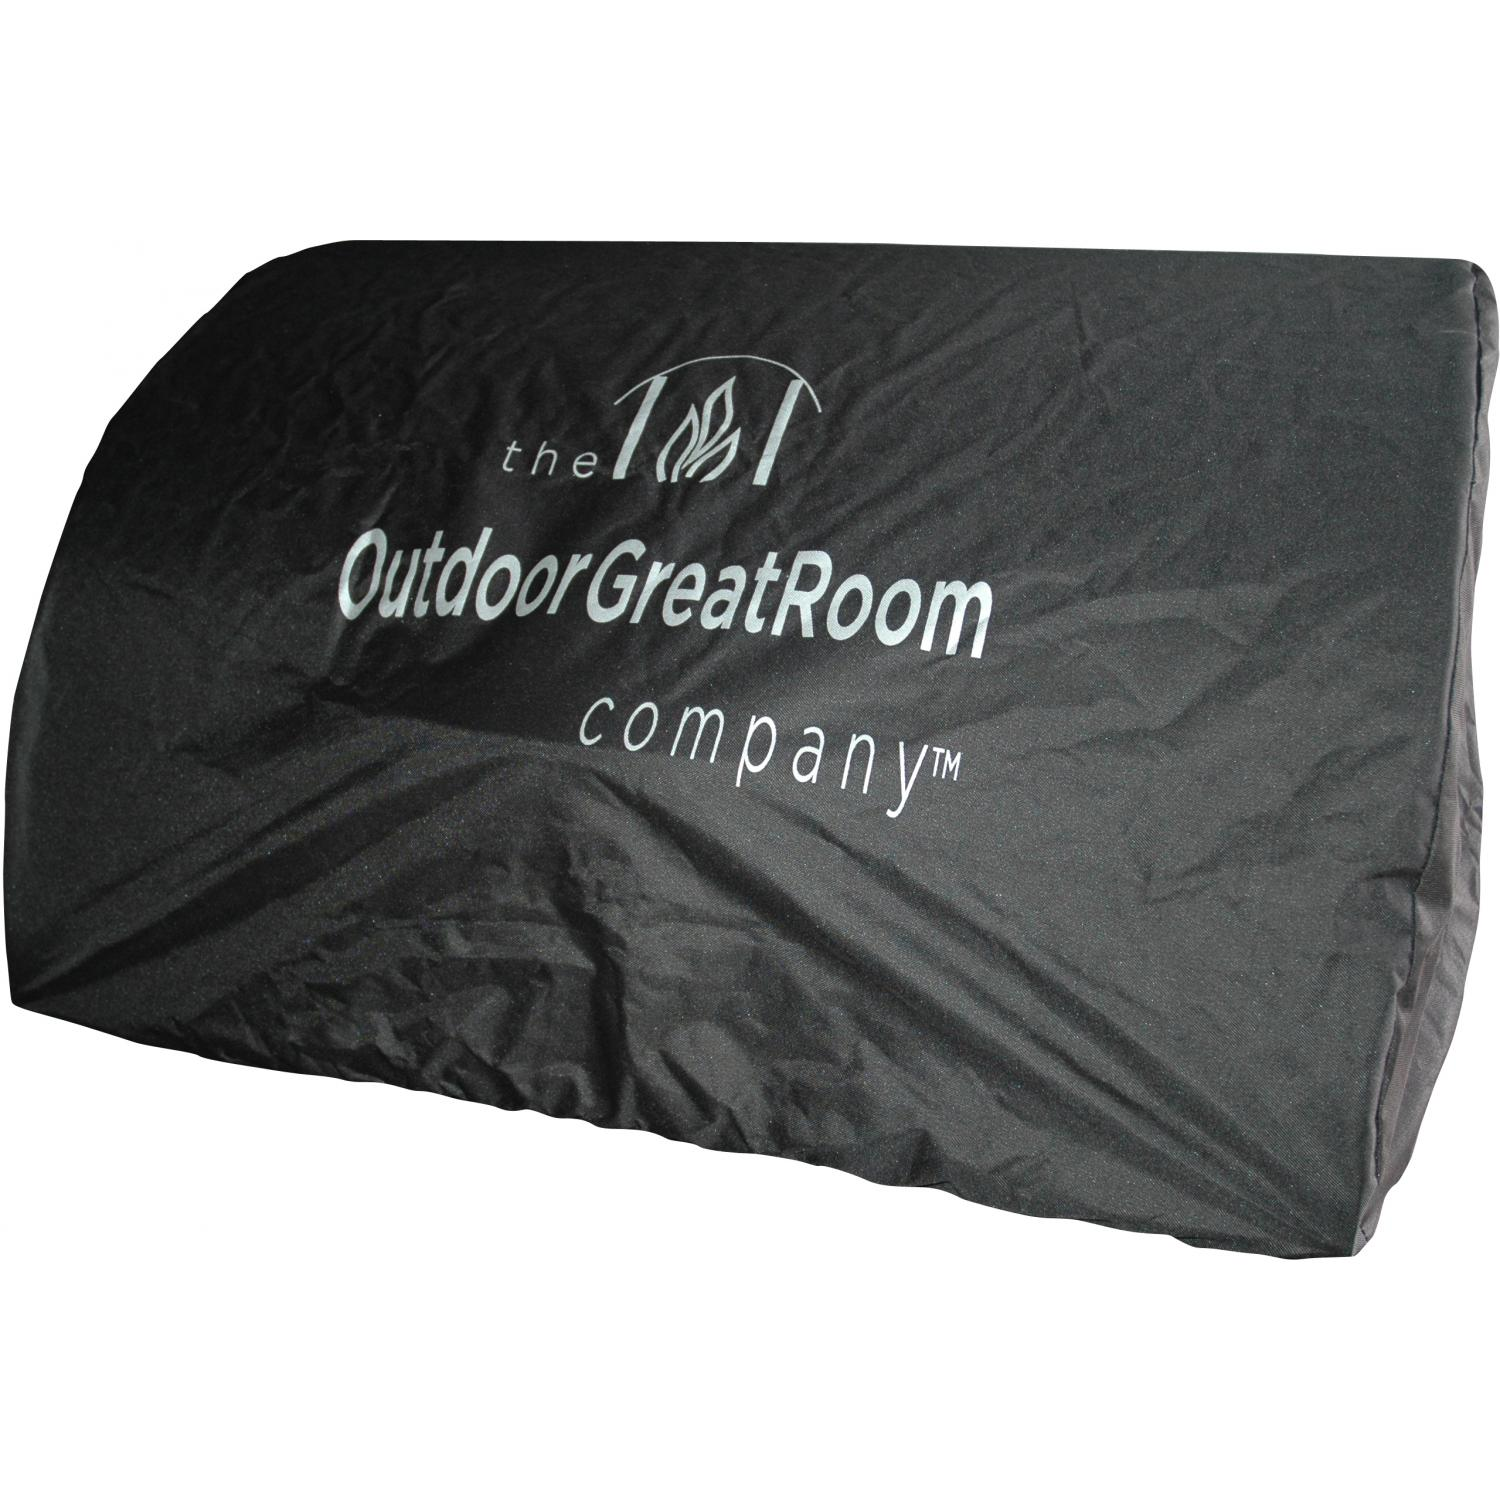 Outdoor GreatRoom Company Cover For 24 Inch Legacy Cook Number Gas Grill - Built-In